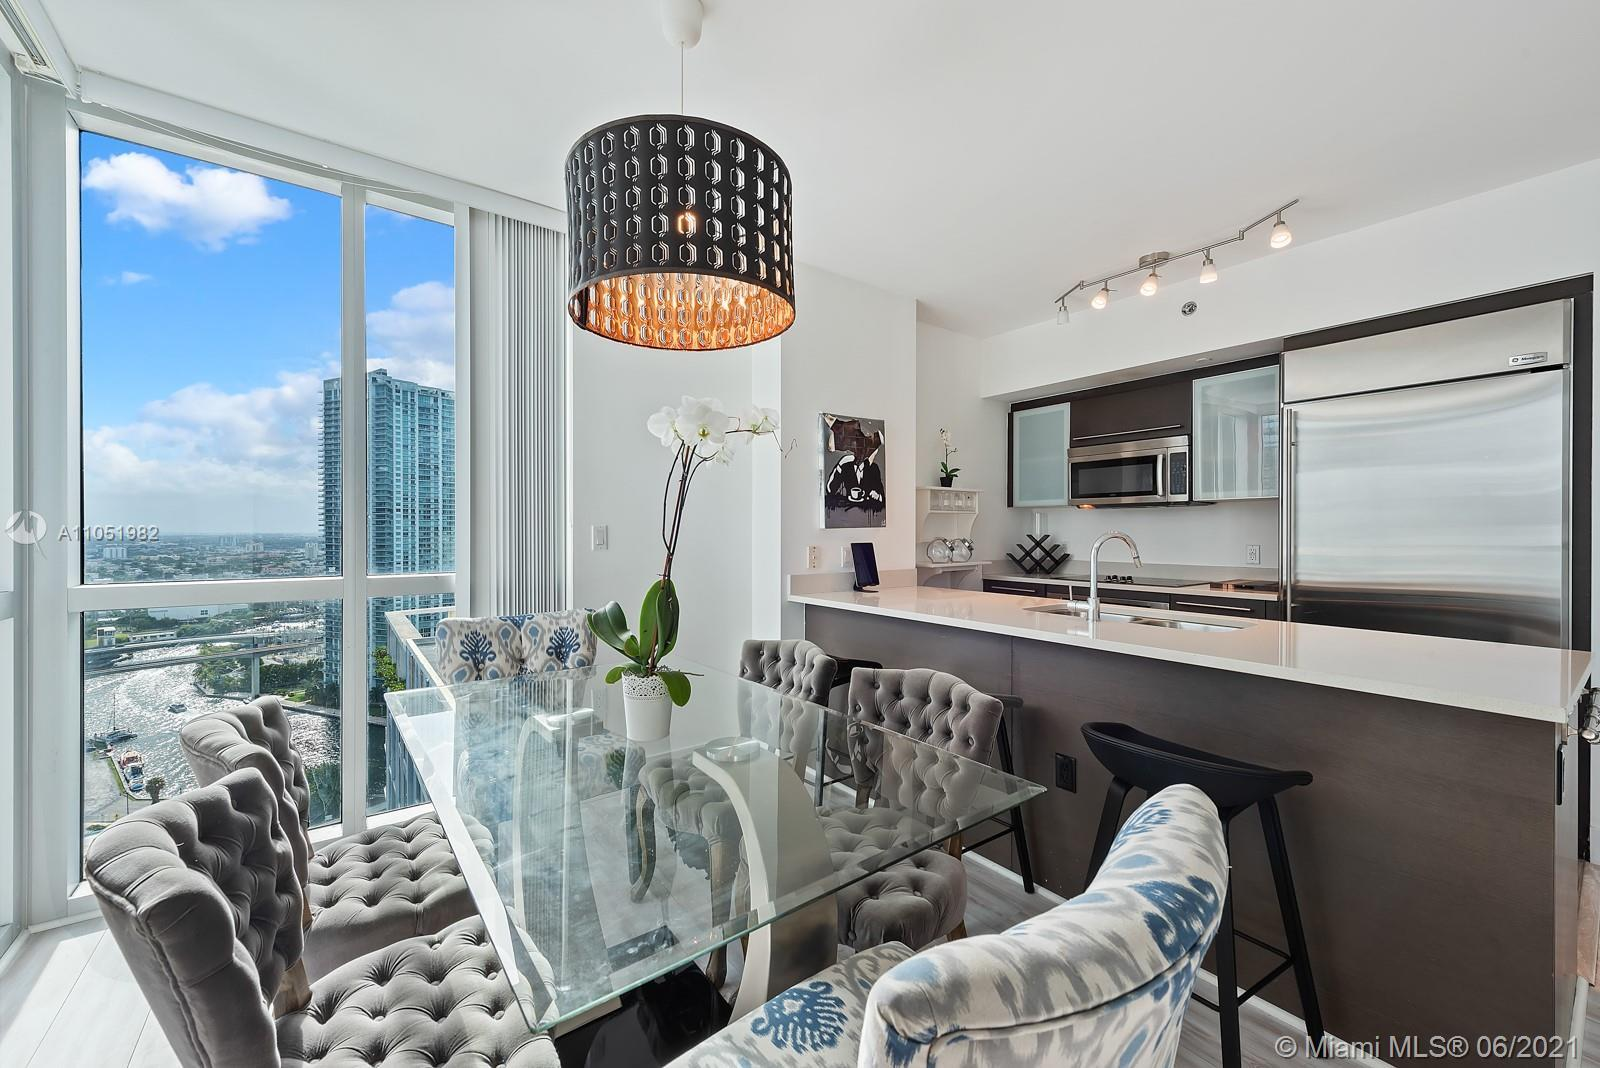 City living at its finest! Step into this beautifully appointed 2 bed 2 bath split floor plan corner